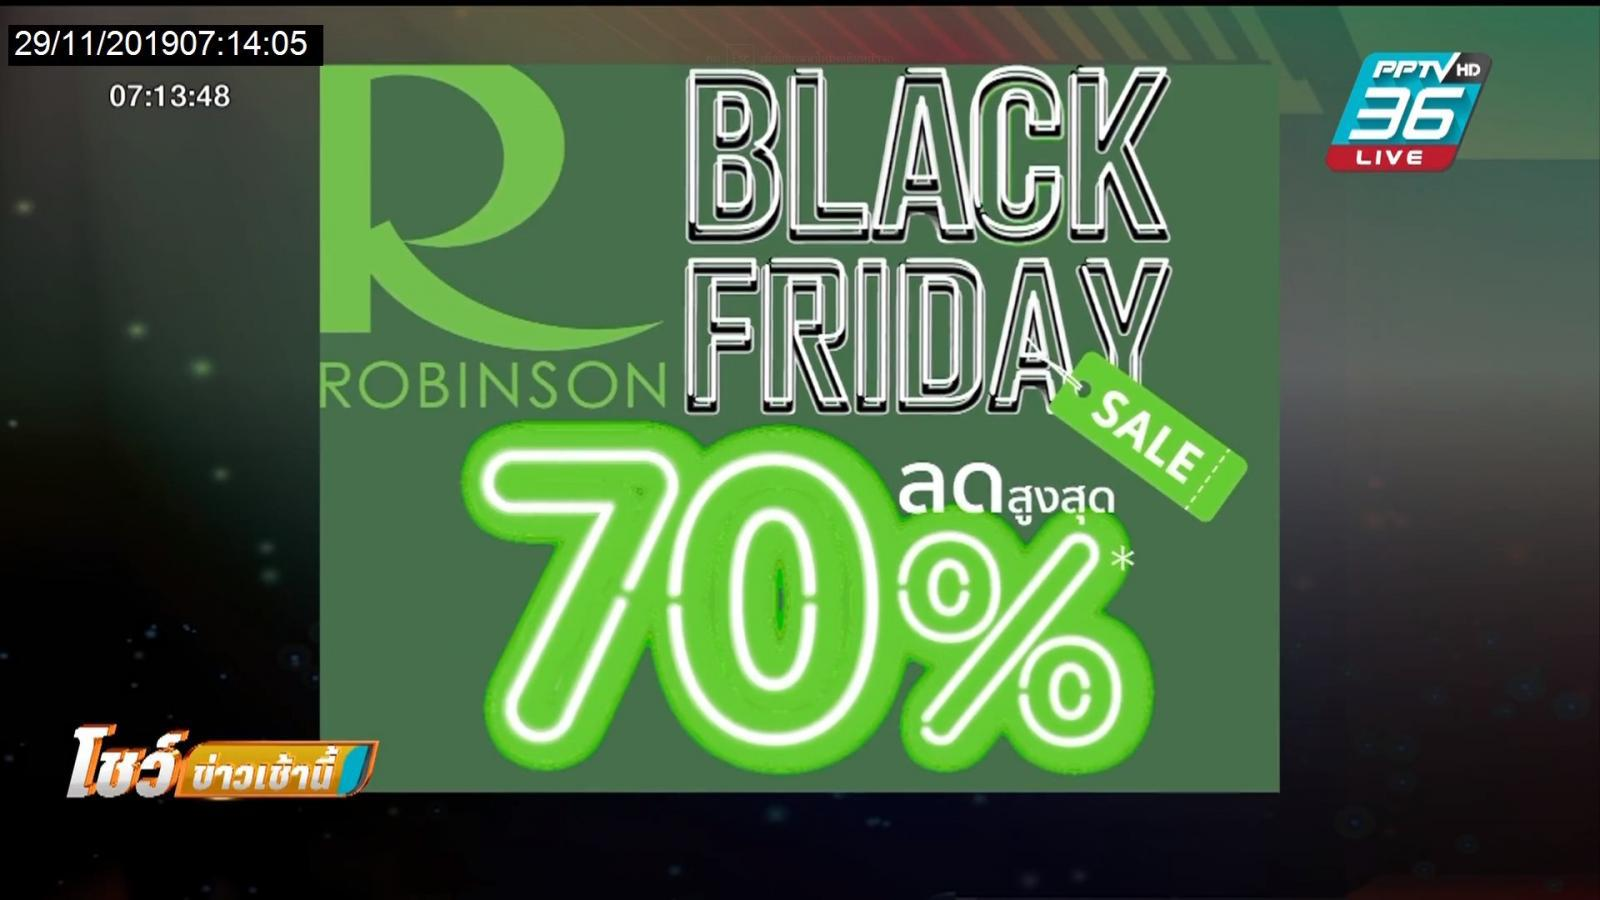 ROBINSON BLACK FRIDAY SALE ลดสูงสุด 70%